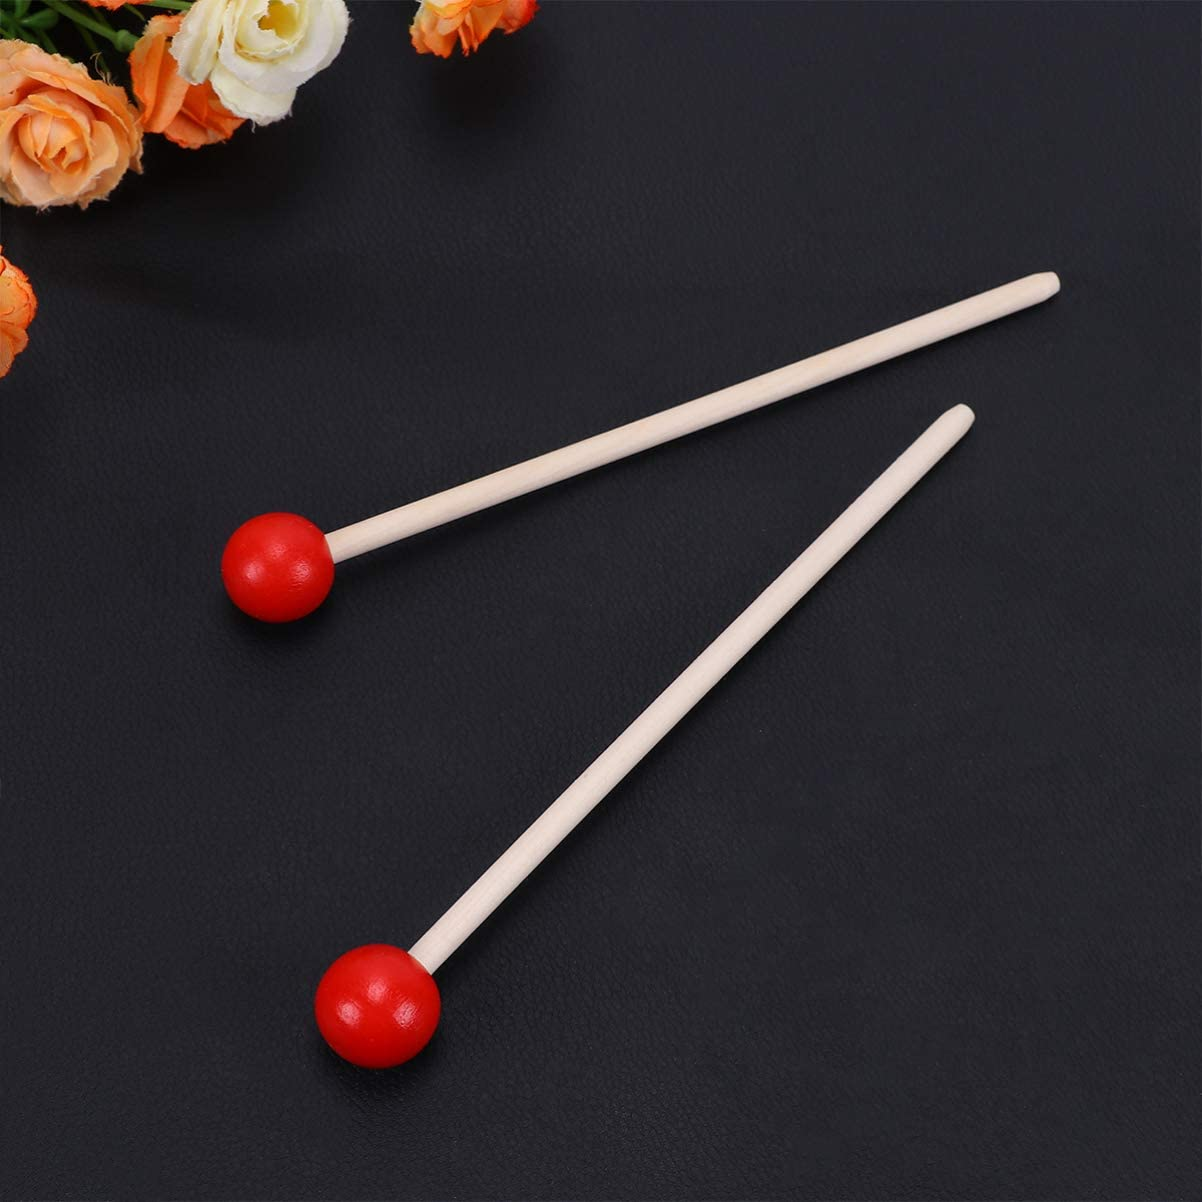 EXCEART 12pcs Percussion Mallets Sticks Multi Purpose Xylophone Chime Bell Stick with Wood Handle Musical Instrument Supplies for Kids Toddler Red